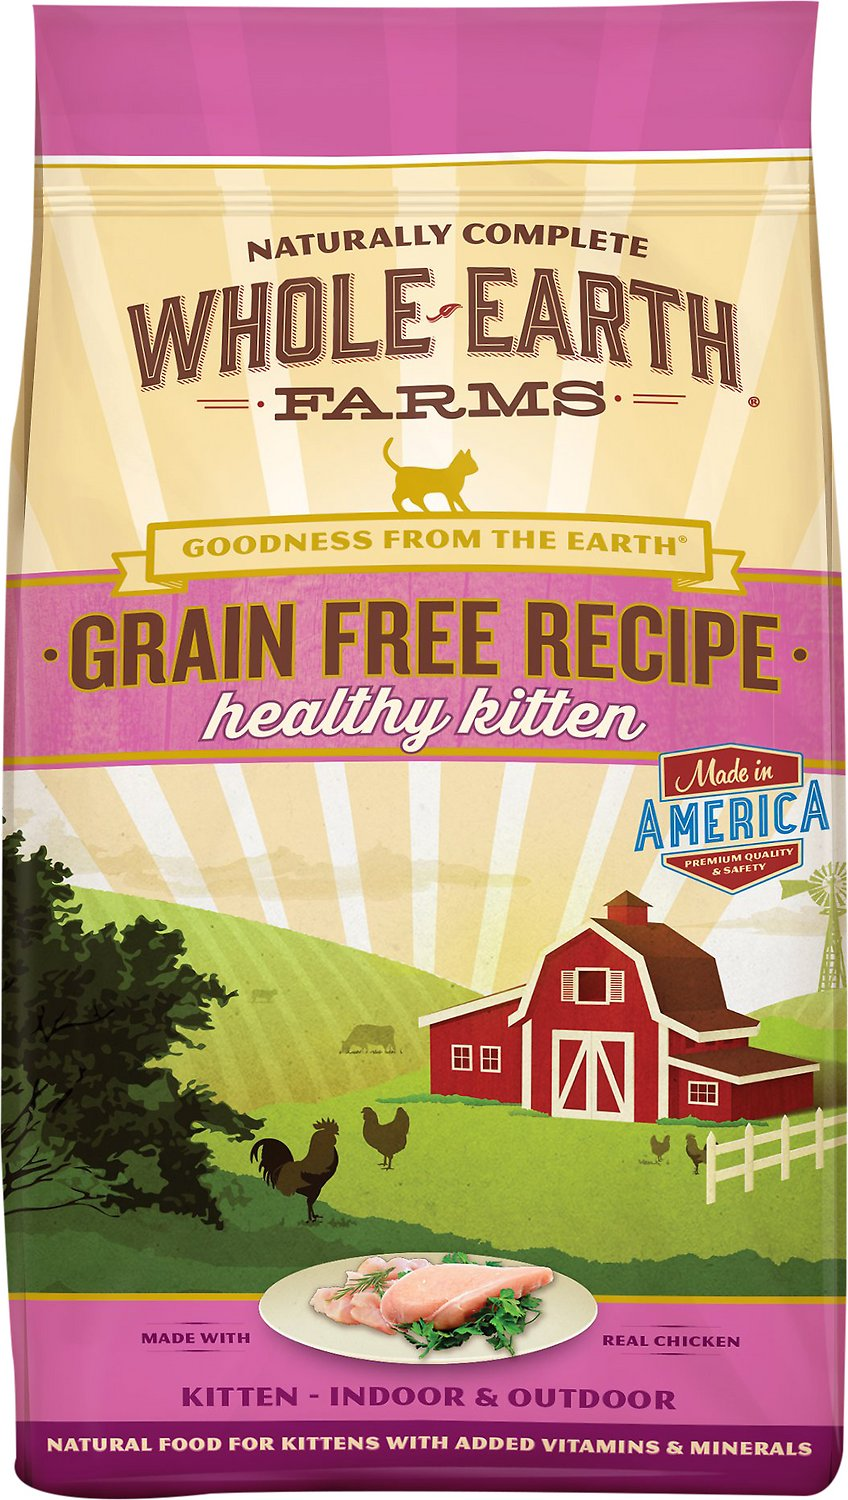 Whole Earth Farms Grain-Free Healthy Kitten Recipe Dry Cat Food Image